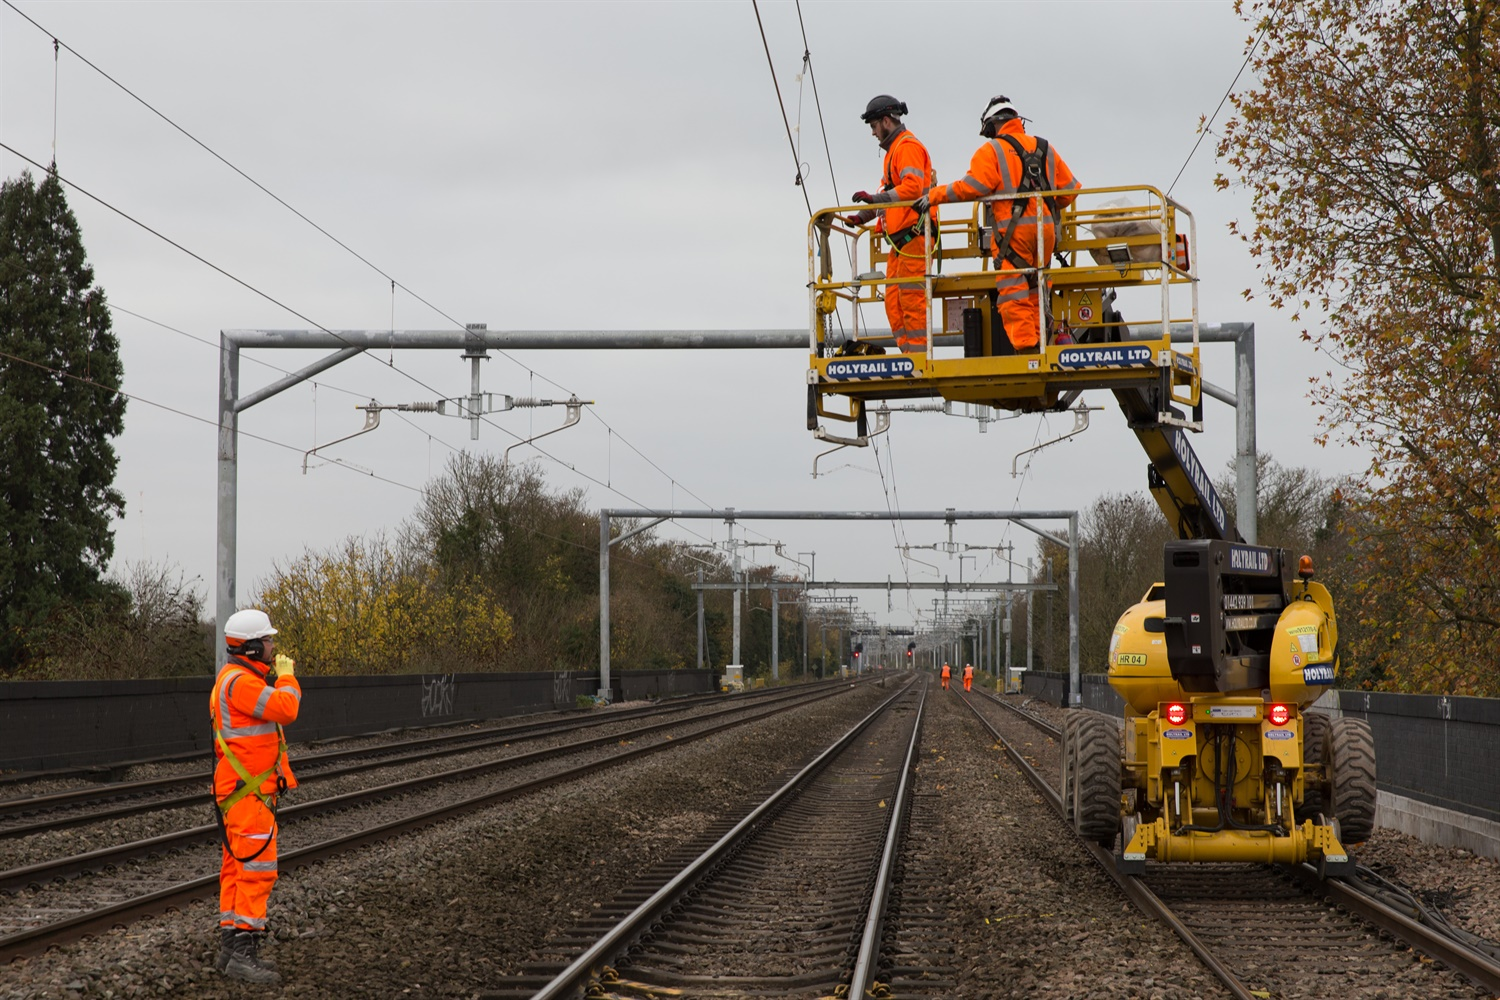 GOBLIN electrification on track for January 2018 completion